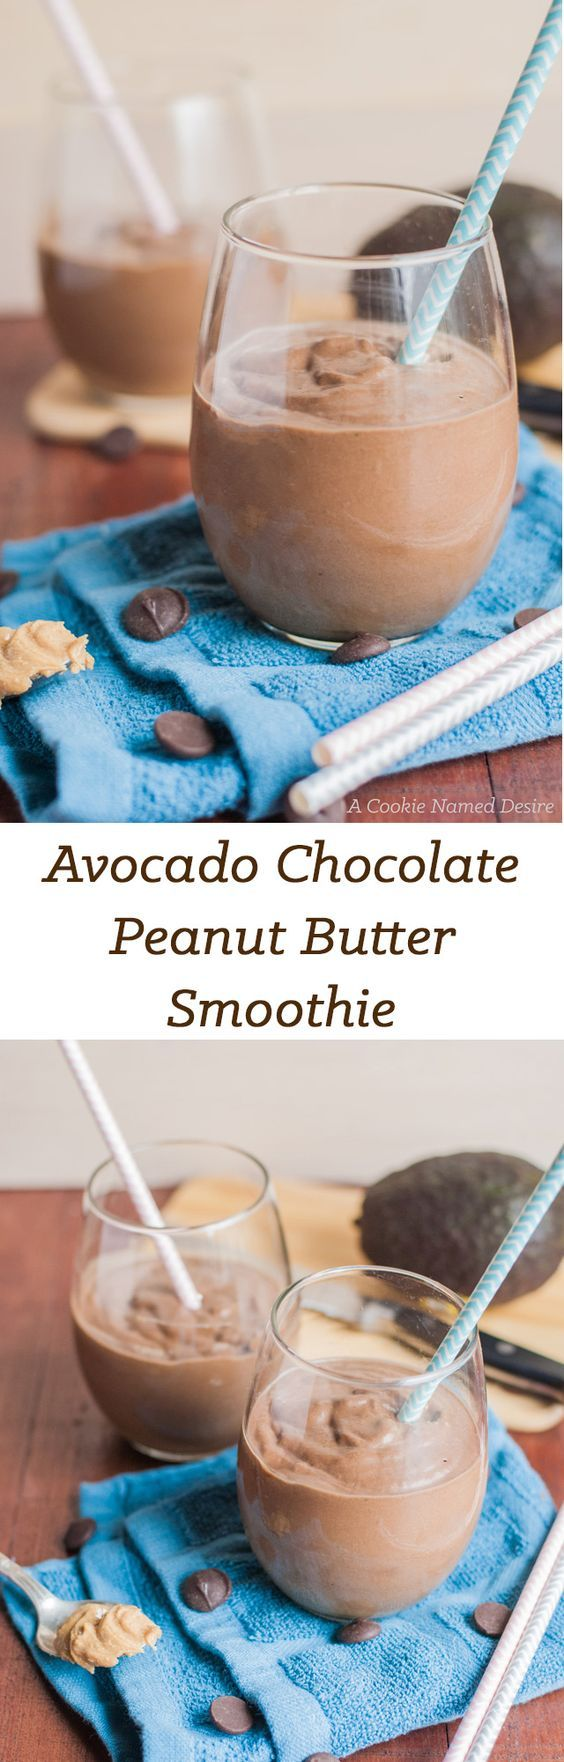 A creamy, thick avocado chocolate peanut butter smoothie that is like drinking a milkshake, but is secretly packed with healthy nutrients.